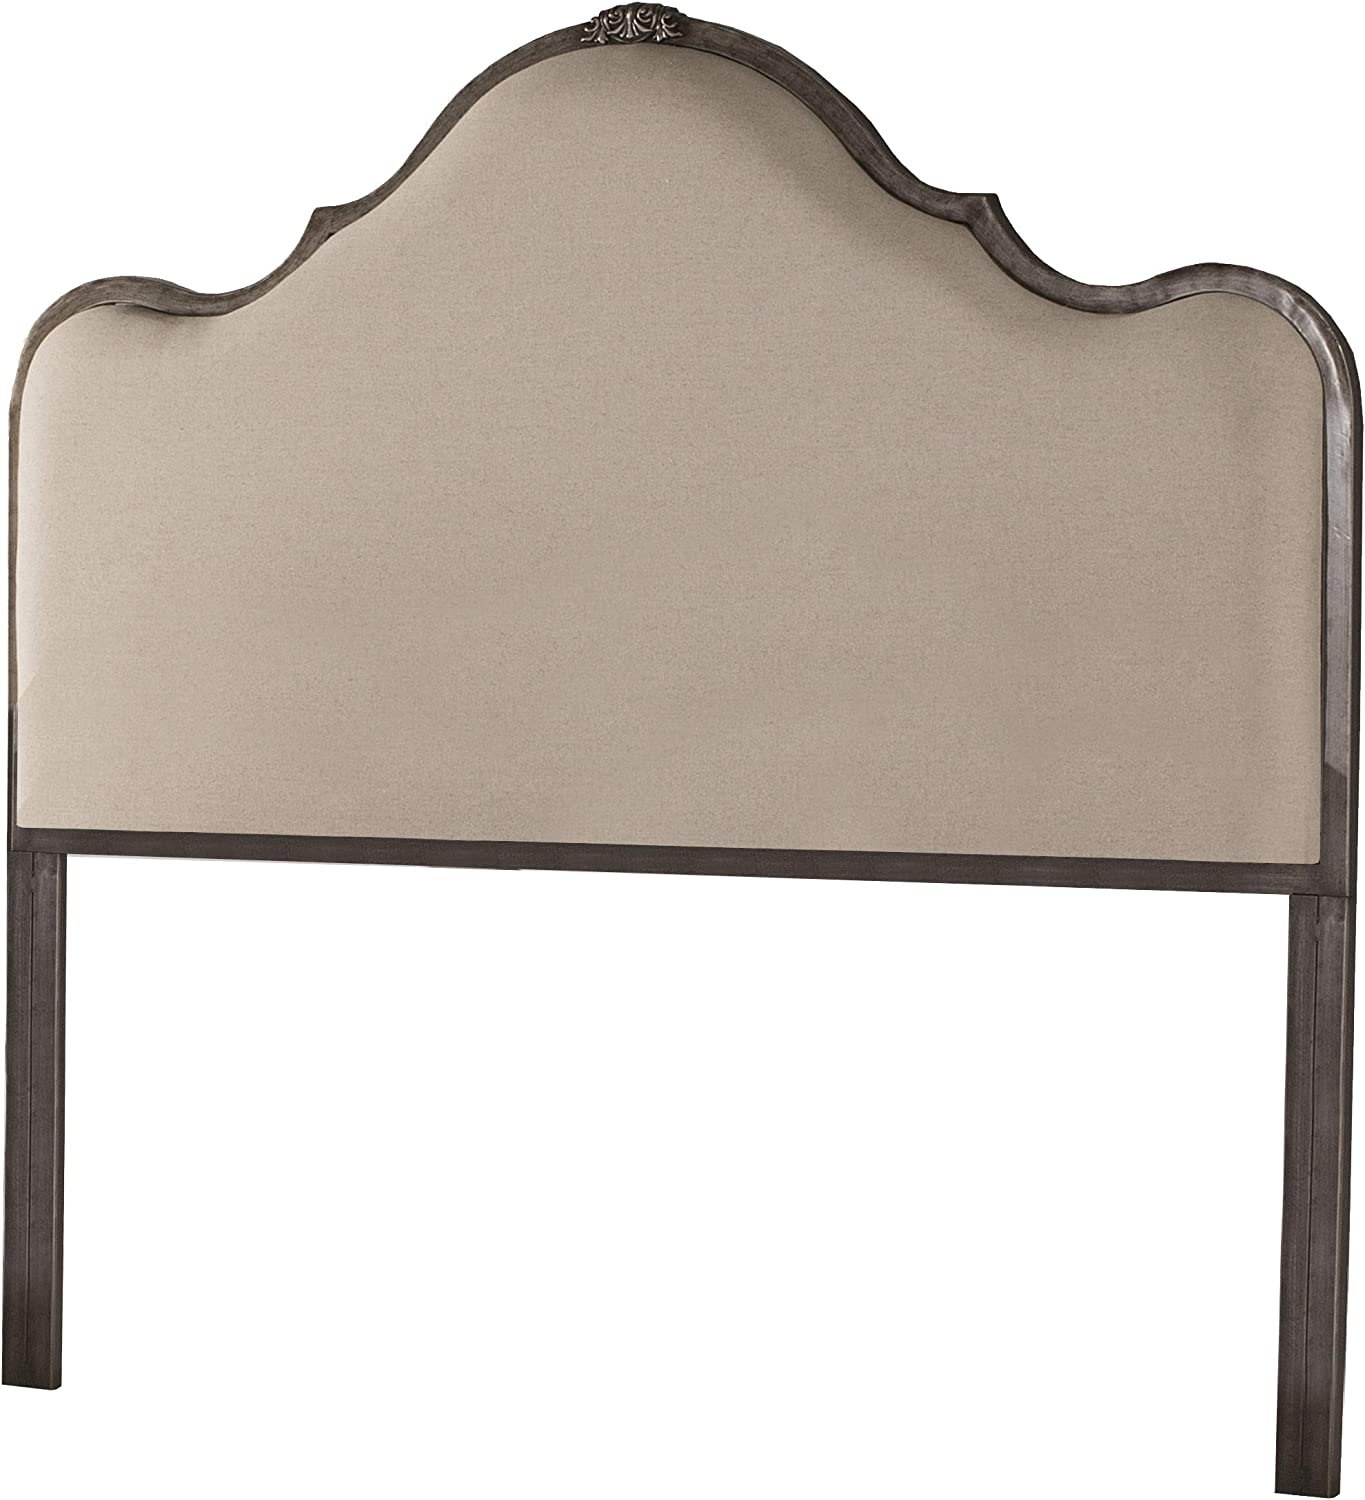 Hillsdale Furniture Hillsdale Delray, King, Frame Not Included, Linen Stone Headboard,